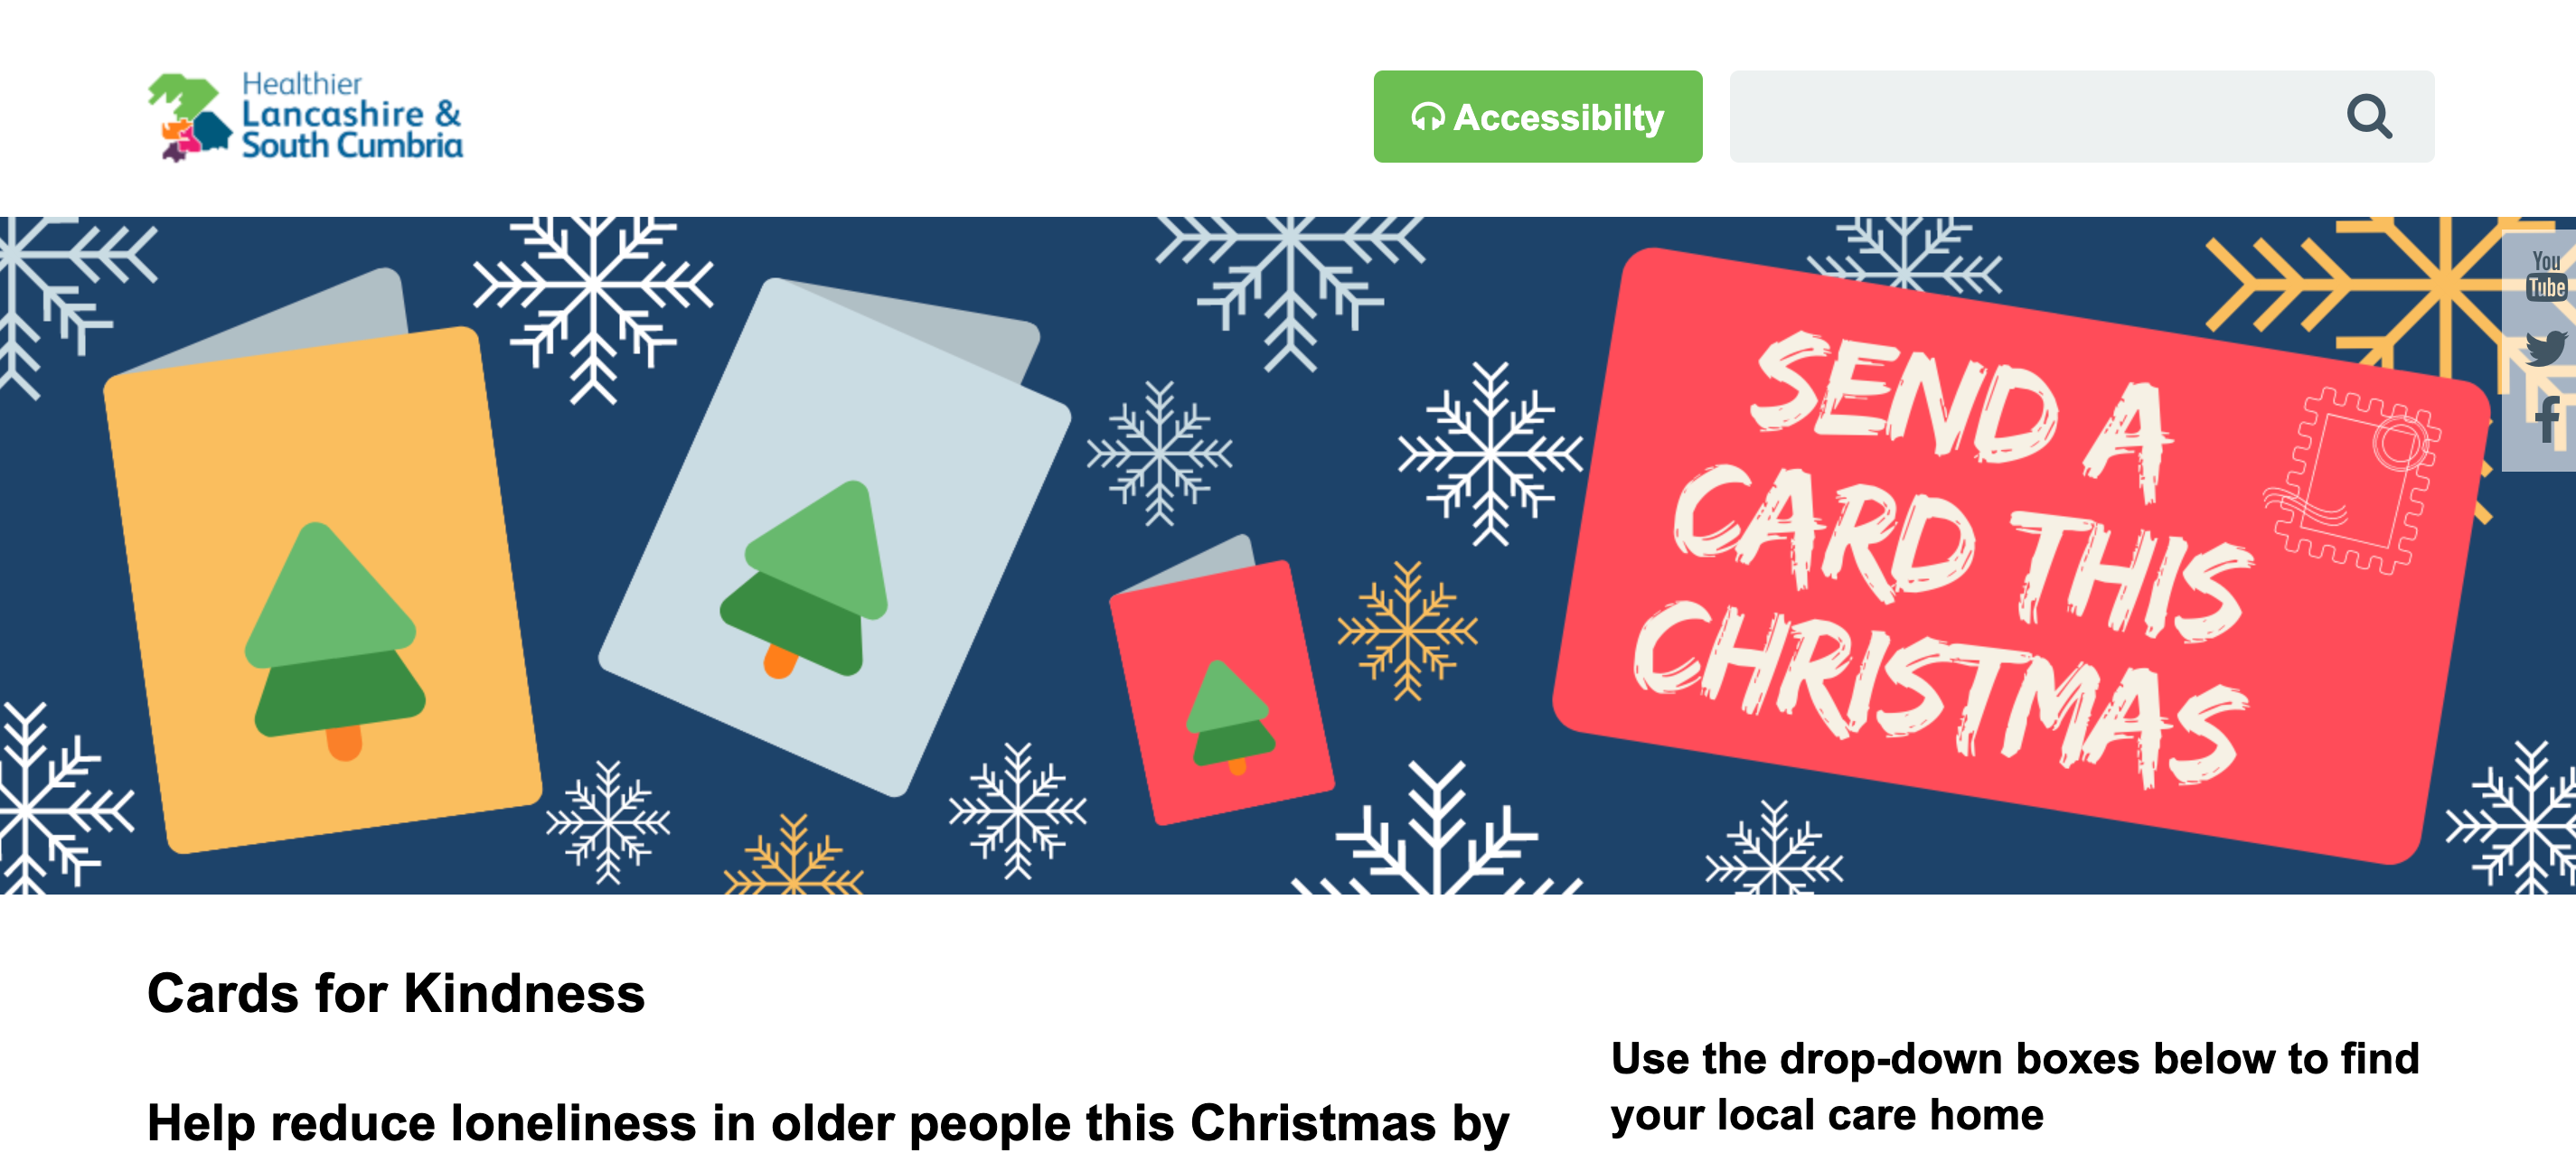 Above: The Cards for Kindness initiative is being spearheaded in Cumbria and Lancashire.